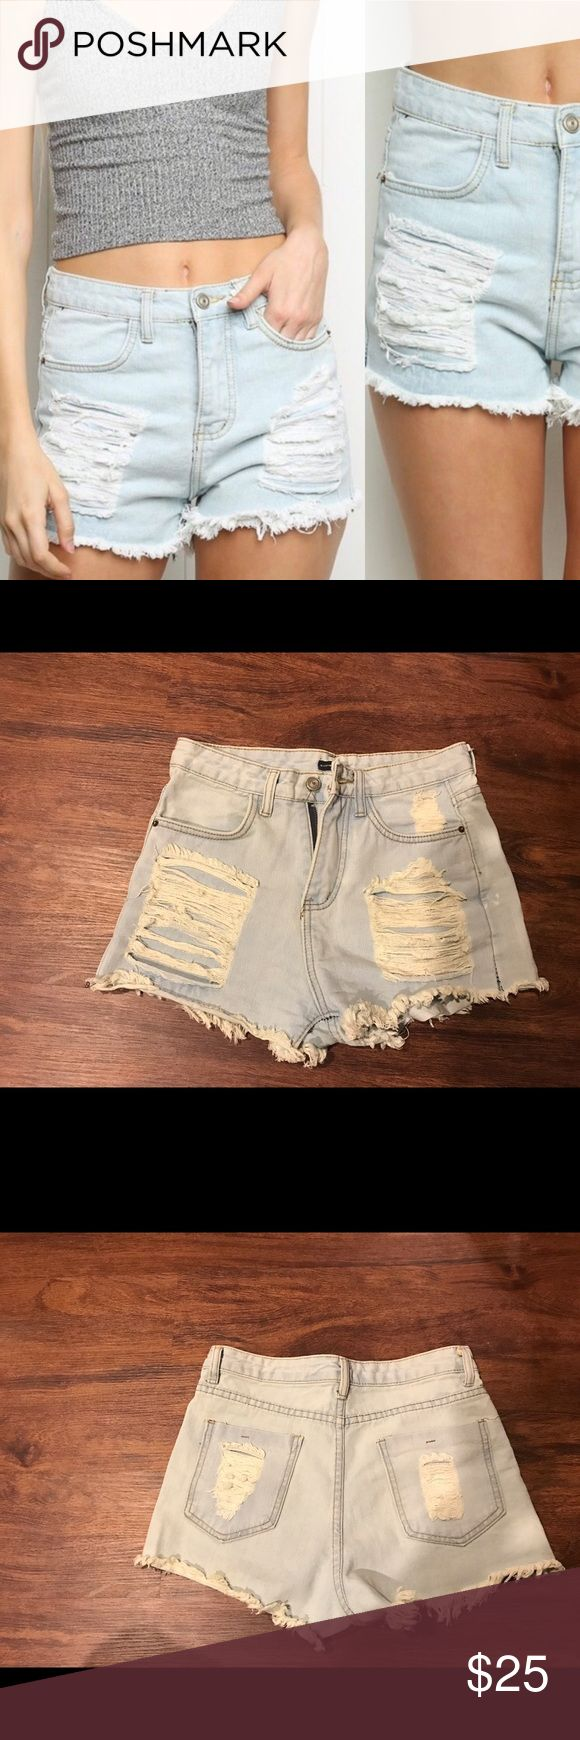 "Brandy Melville High Waisted Jean Shorts 🎉💋 Brandy Melville High Waisted Jean Shorts 🎉💋 so freaking cute they can go with anything absolutely love the style. Women's size medium fits for like a s or xm. I would say they are bit more on the shorter side and would probably fit someone with a size 24-26"" waist with slender legs. I gained weight and these do not fit me;( Brandy Melville Shorts Jean Shorts"